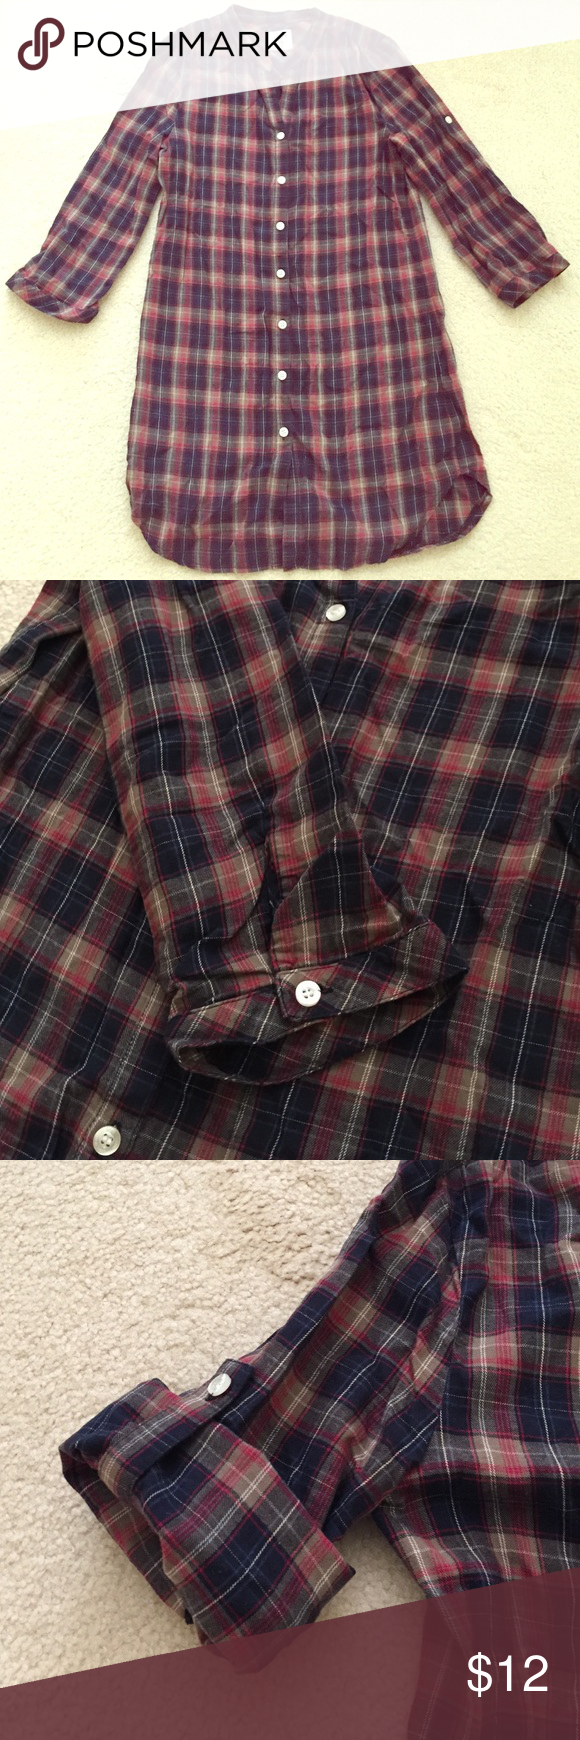 Flannel shirt and leggings  HuM flannel tunic  Plaid flannel Long flannel shirts and Flannel tunic